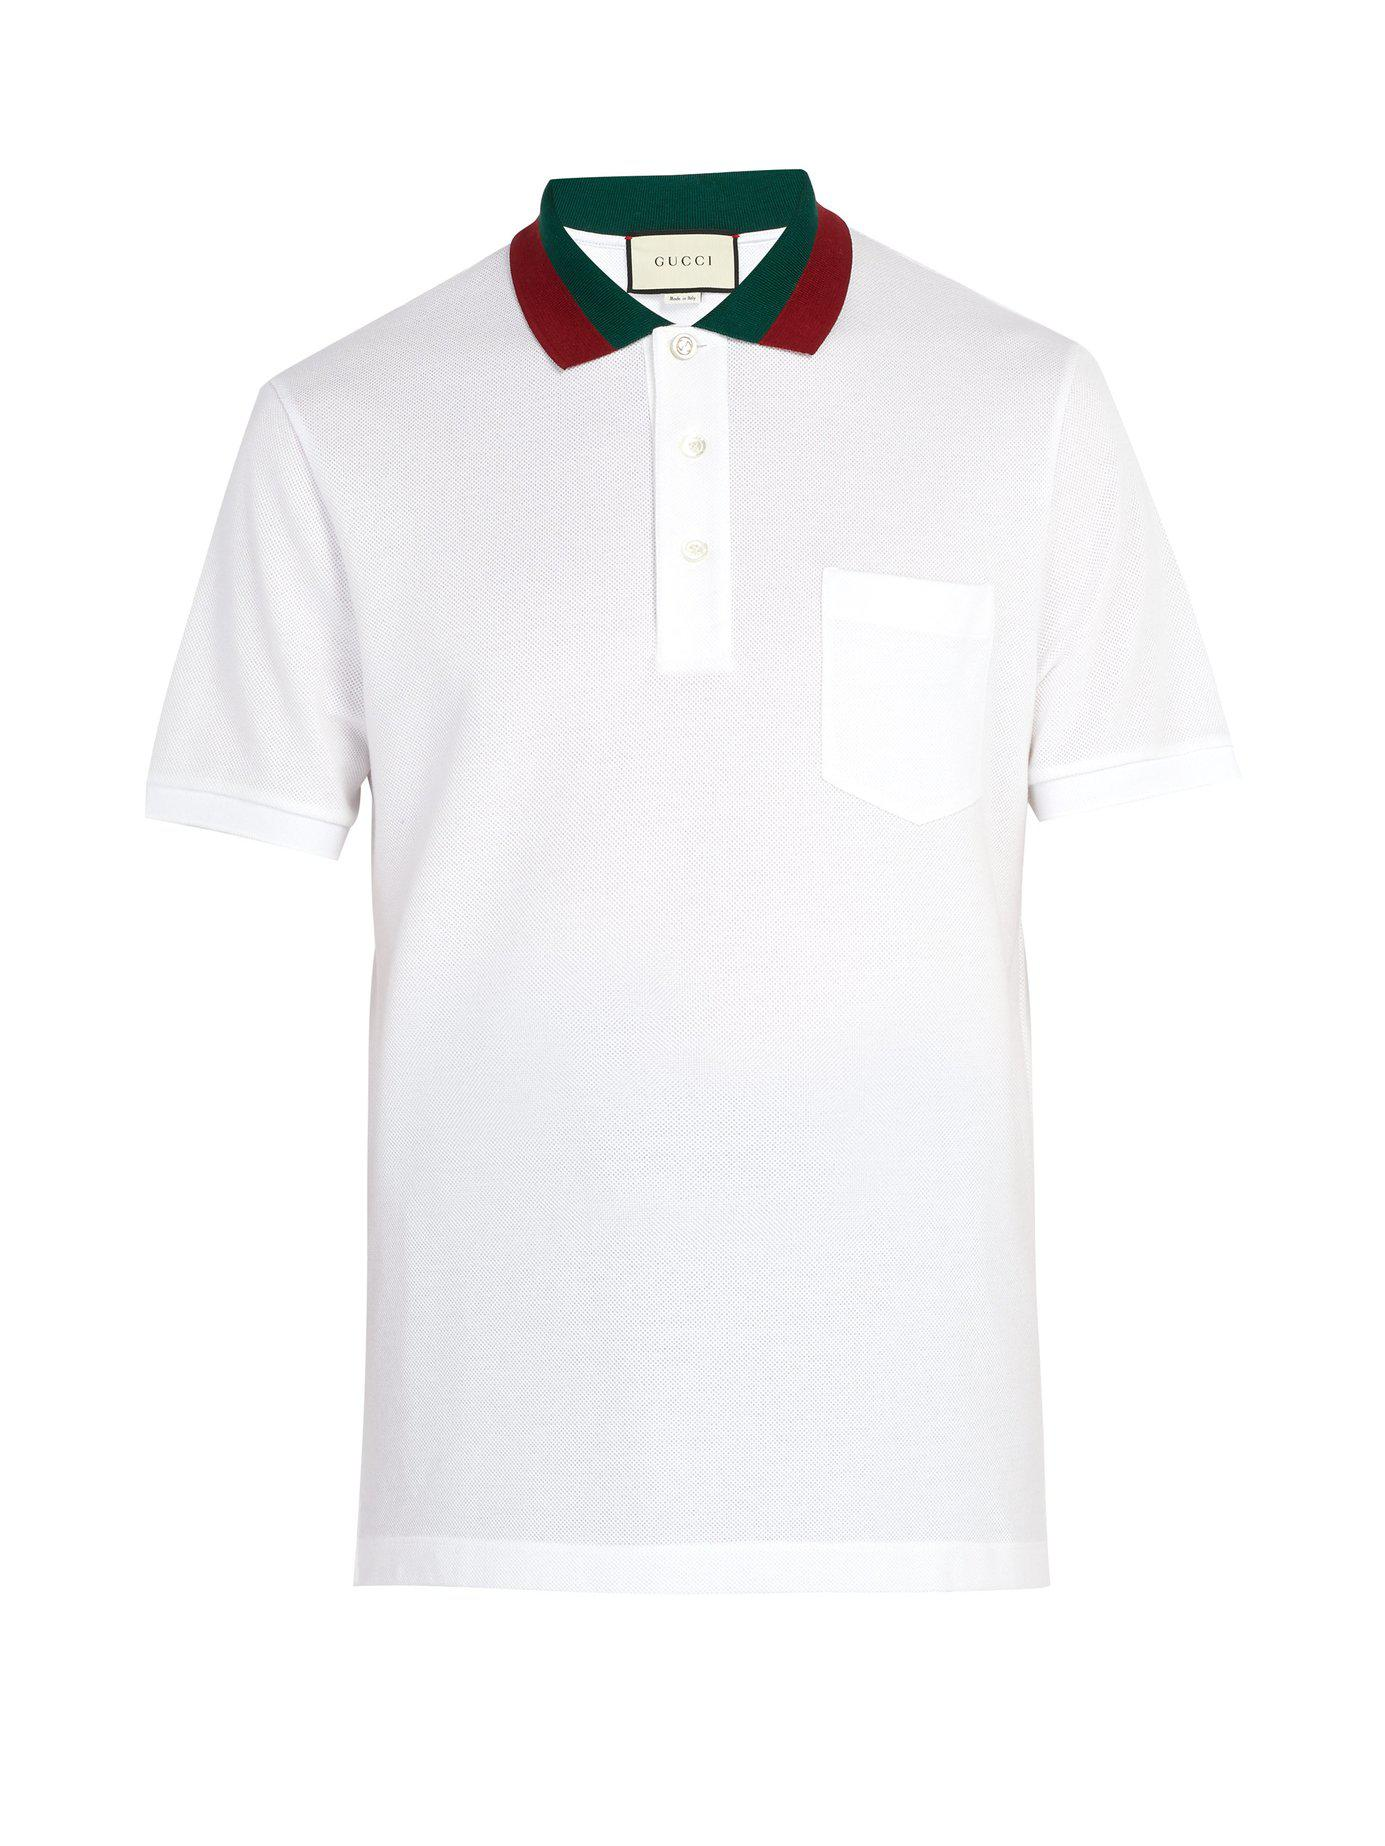 dfb0d117a2f Gucci Web Stripe Trimmed Cotton Piqué Polo Shirt in White for Men - Lyst